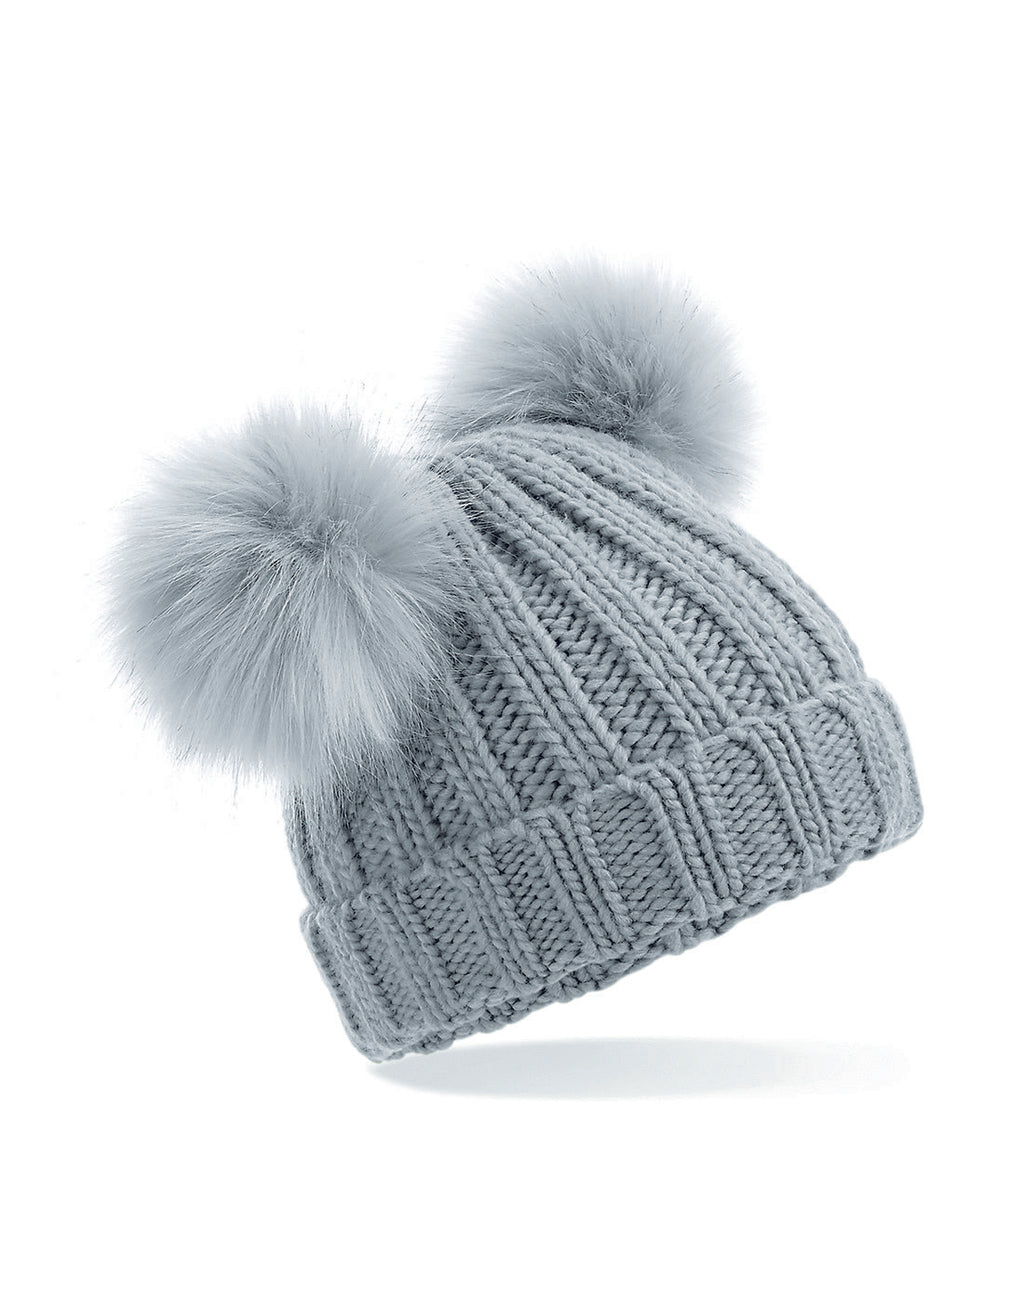 Double Pom Pom Hat - Grey